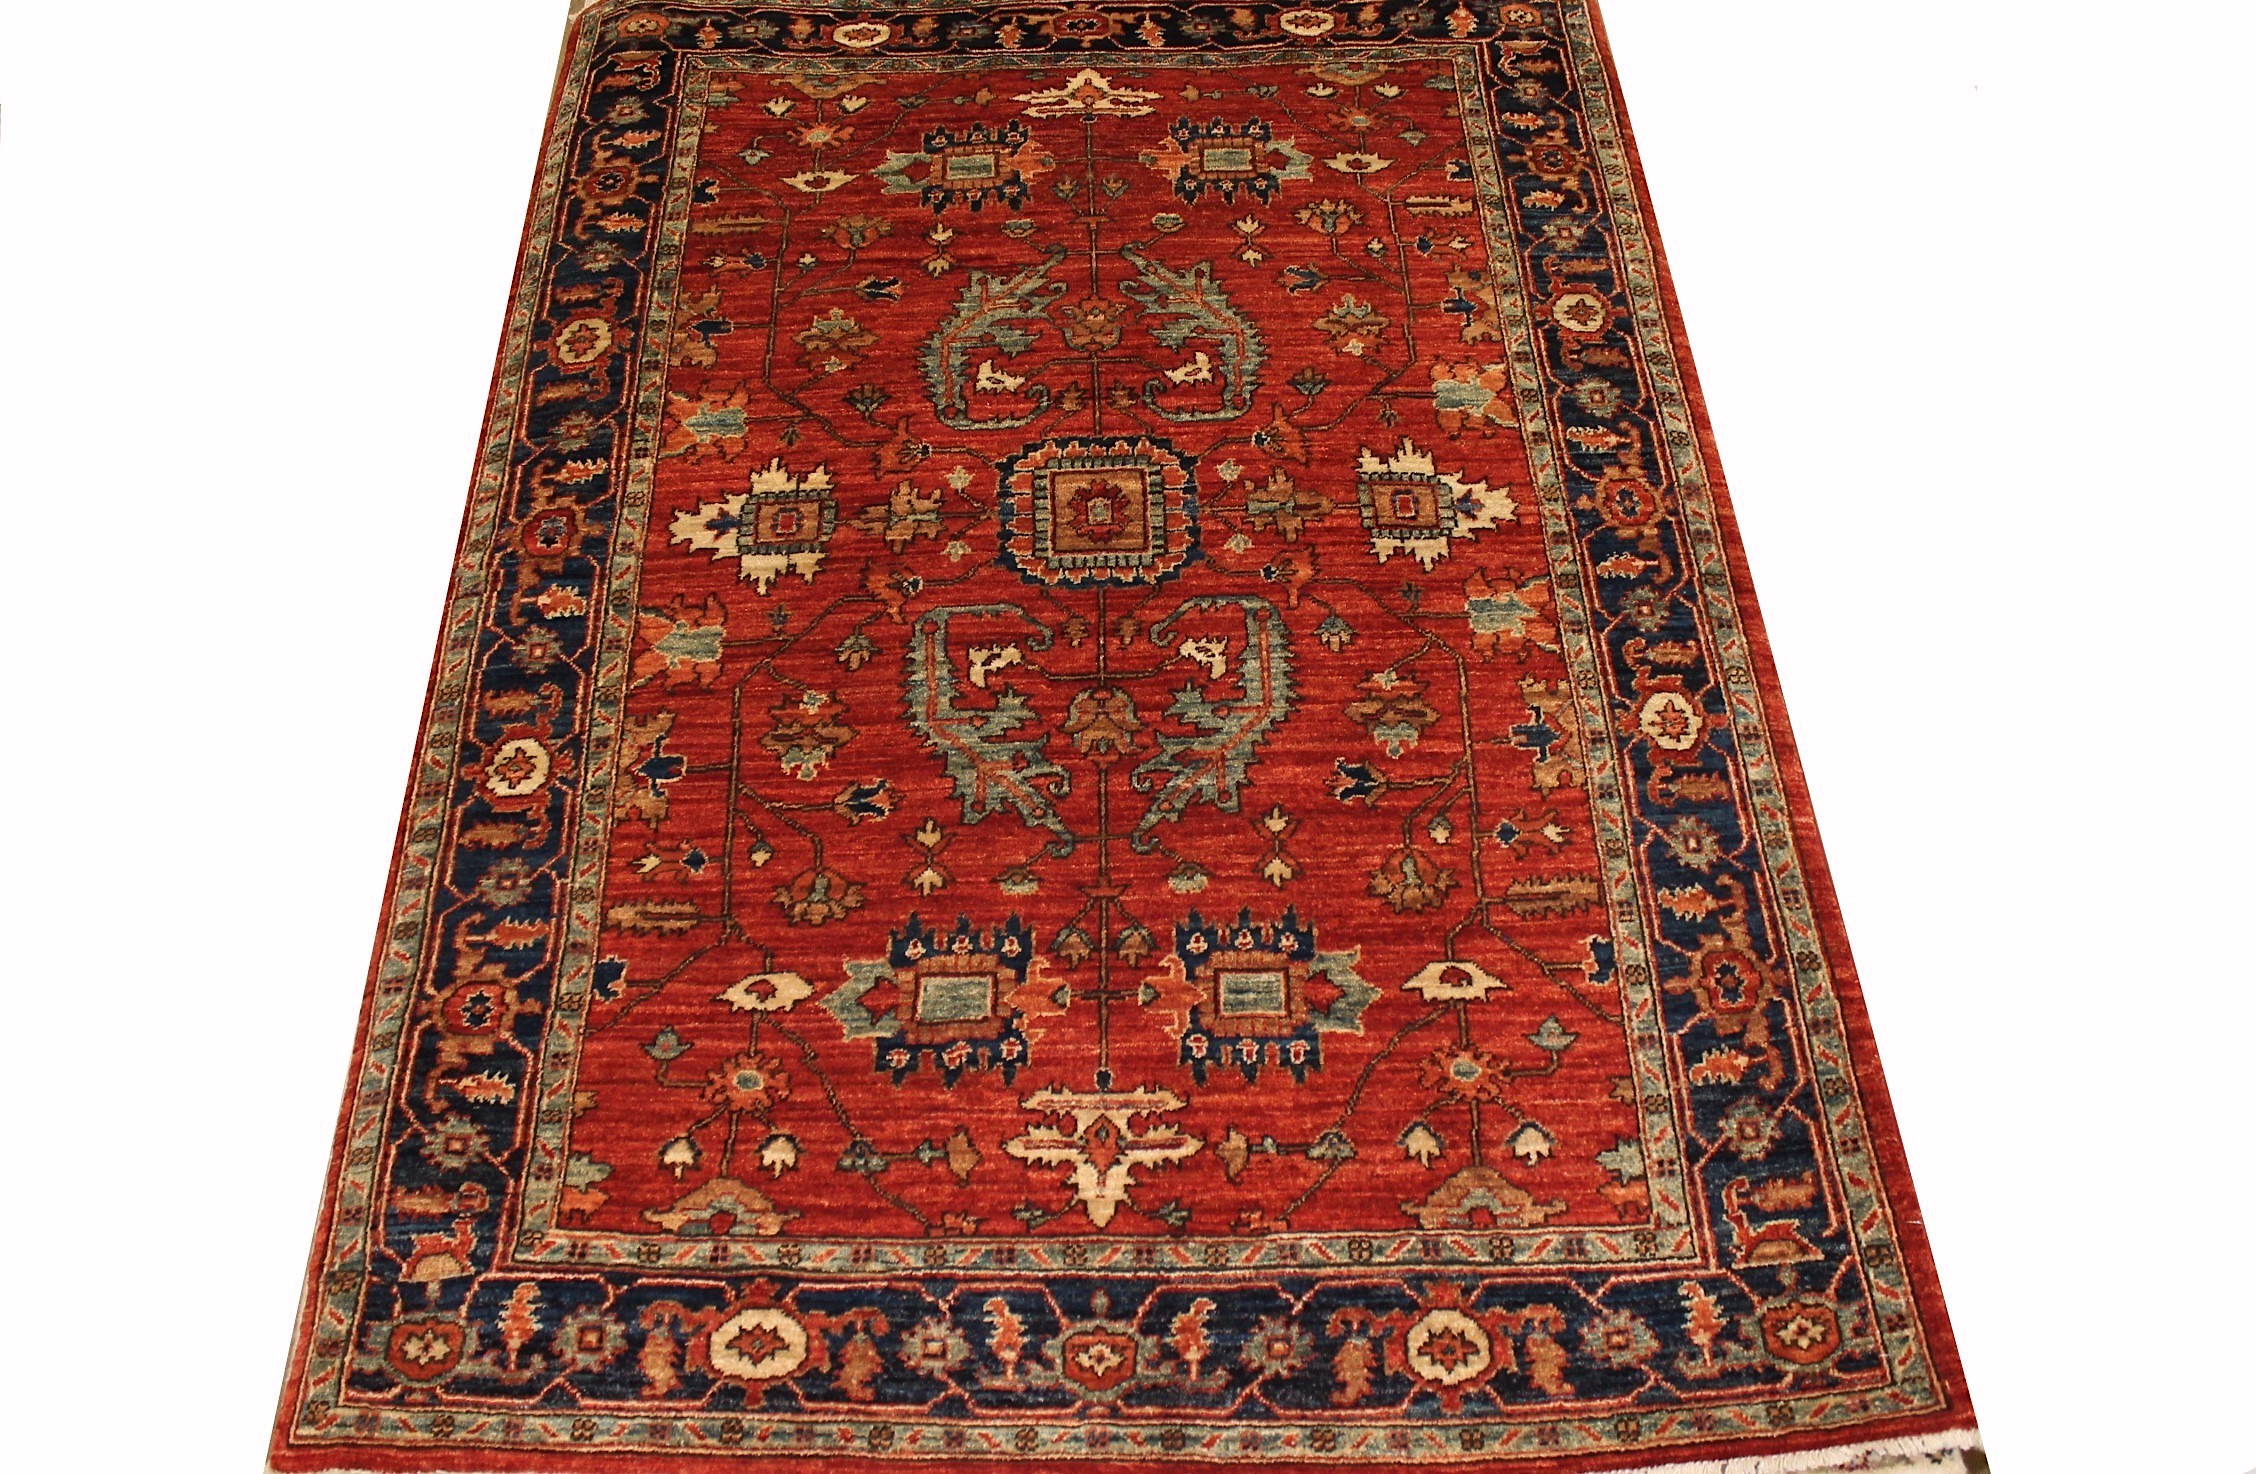 4x6 Traditional Hand Knotted Wool Area Rug - MR023028